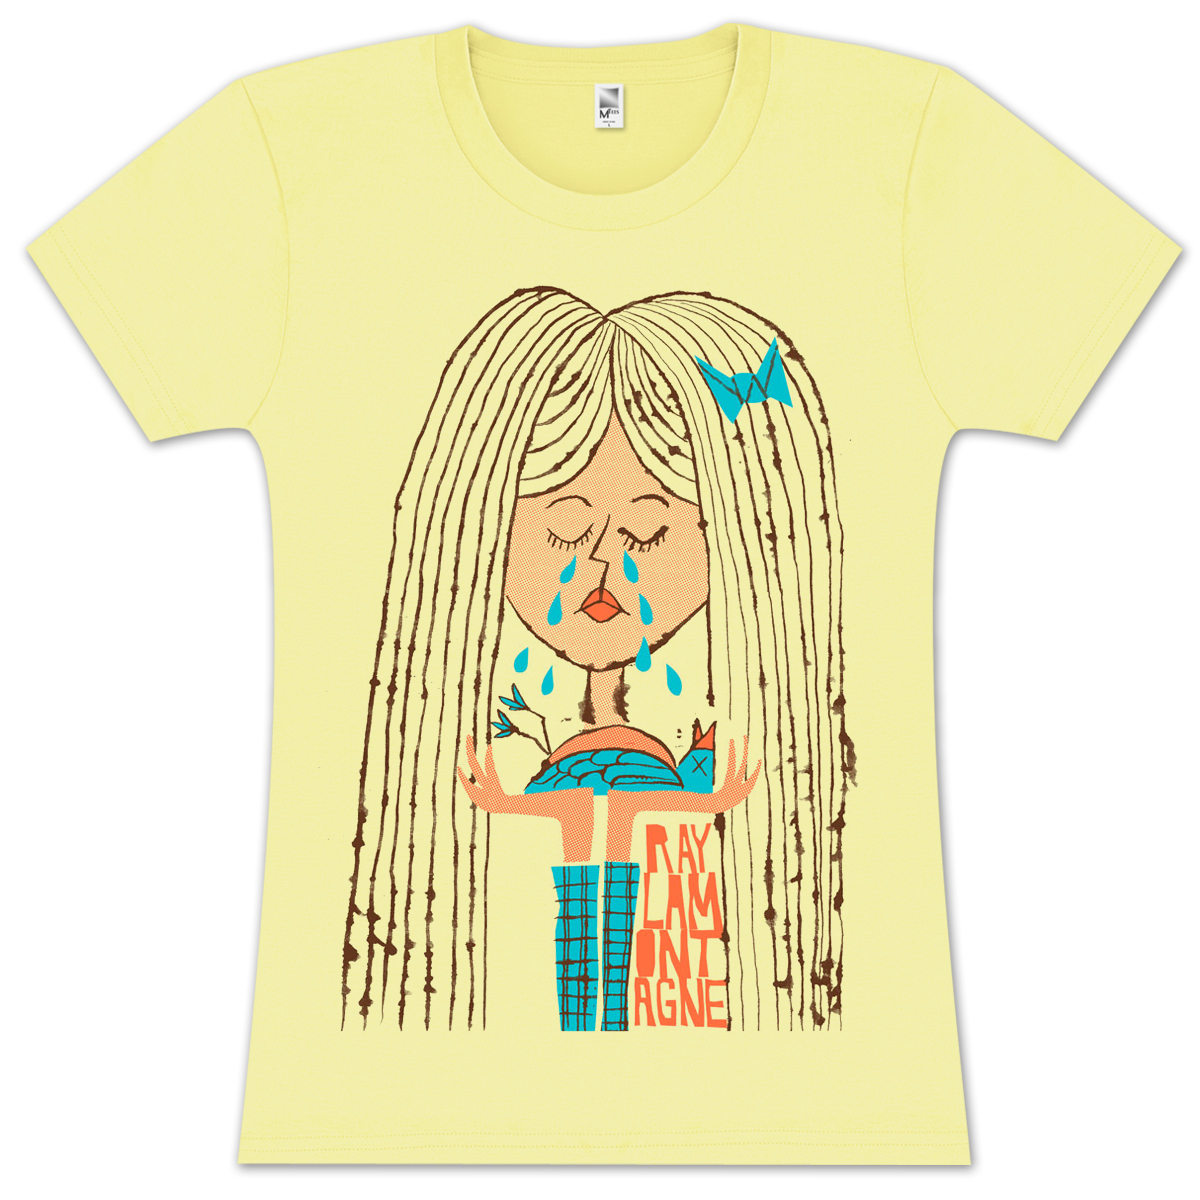 Ray LaMontagne Ladies Sad Girl T-shirt